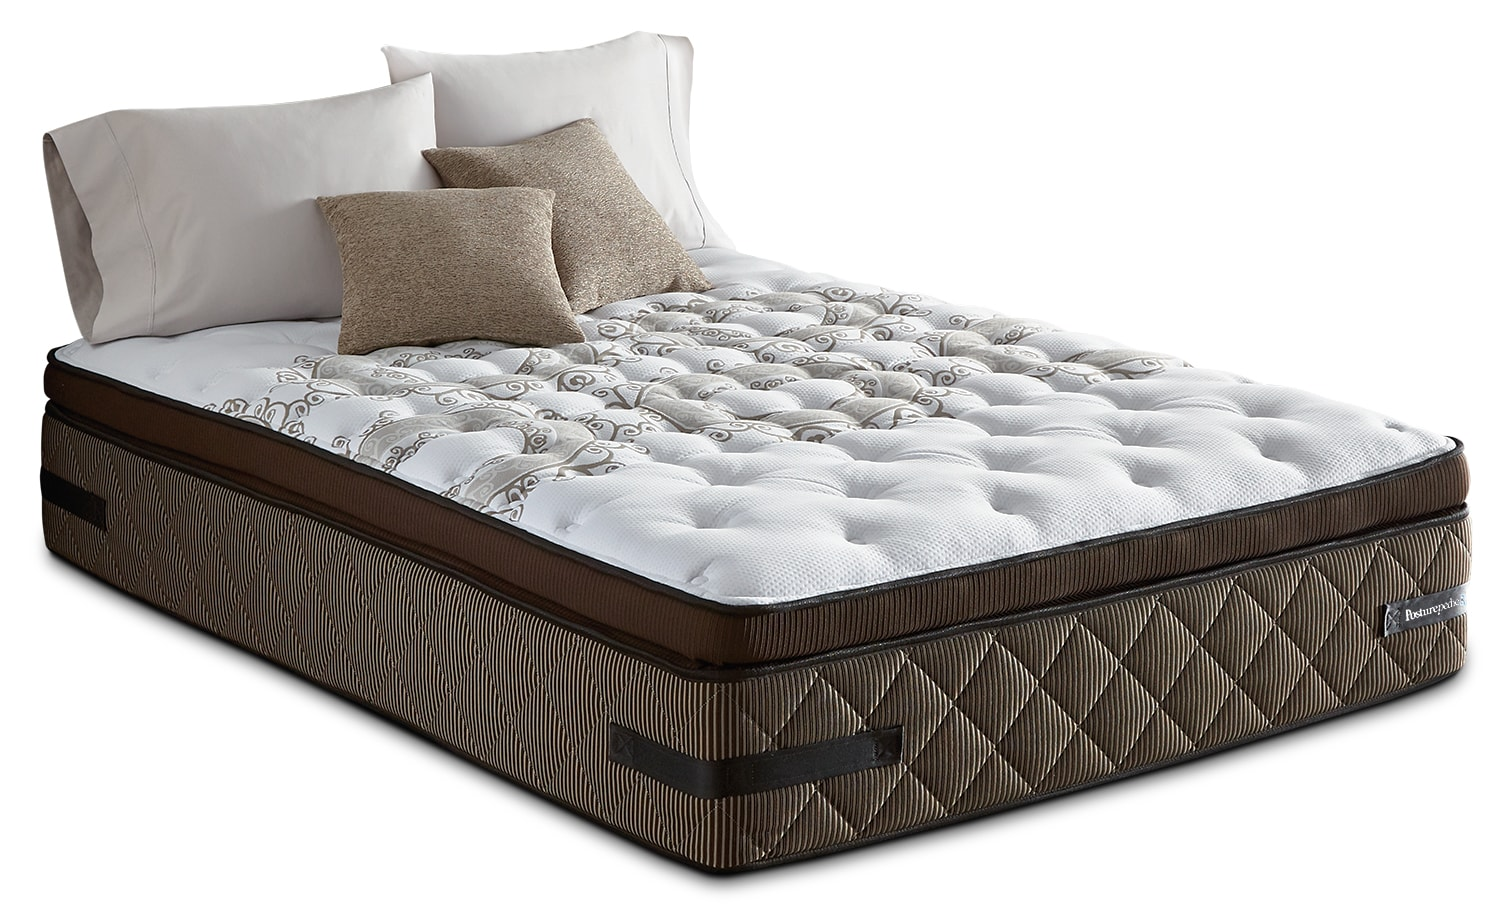 Sealy Crown Jewel Sunsera Euro Pillow-Top Plush Queen Mattress